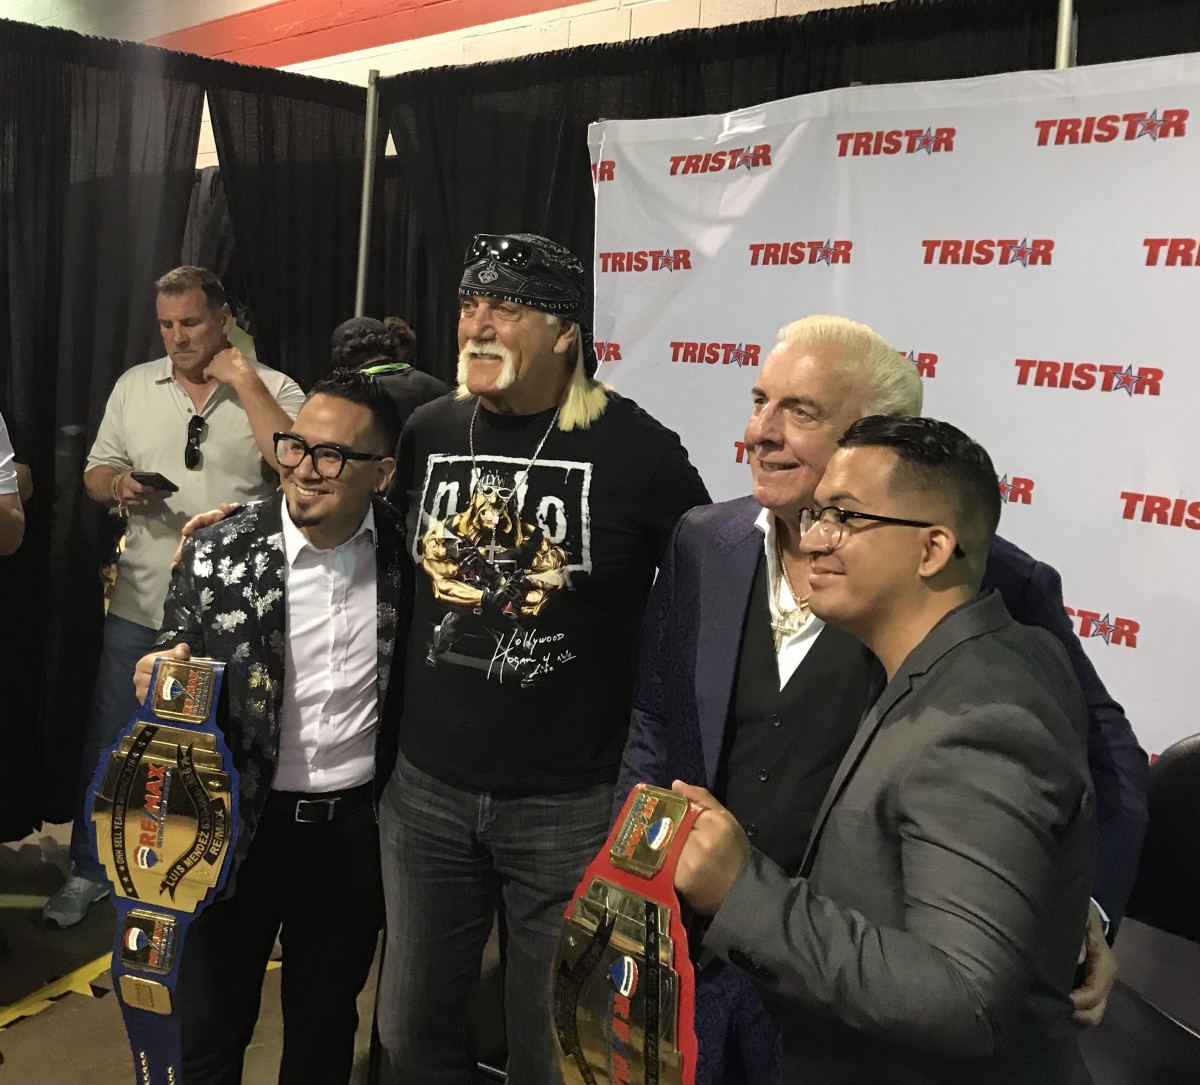 Hulk Hogan and Ric Flair pose for photos with fans.